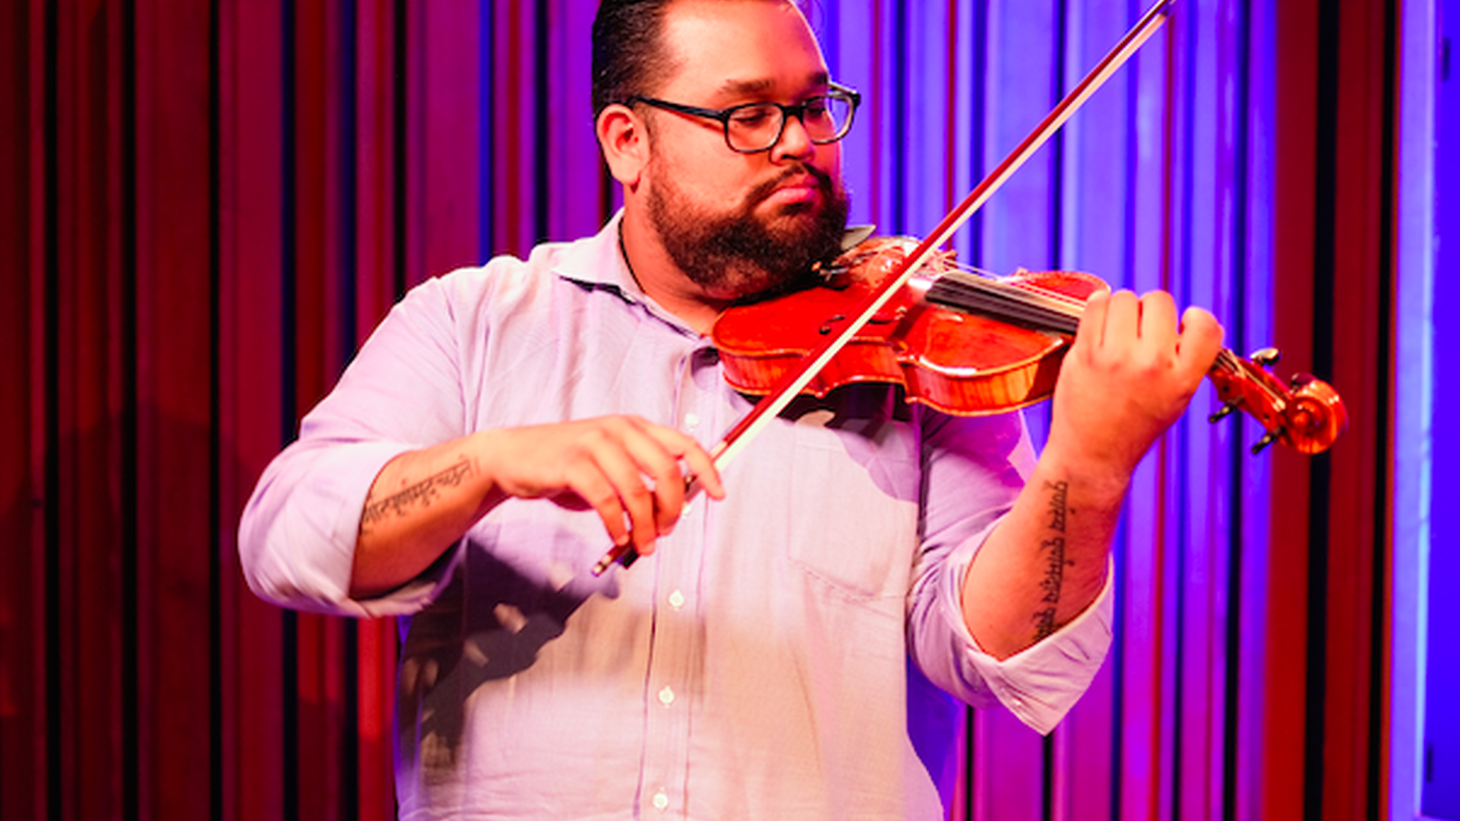 """LA Phil violinist Vijay Gupta recently won a MacArthur """"genius"""" grant. He's known for launching Street Symphony, a nonprofit that brings classical music to Skid Row, homeless shelters, and the LA County jail."""